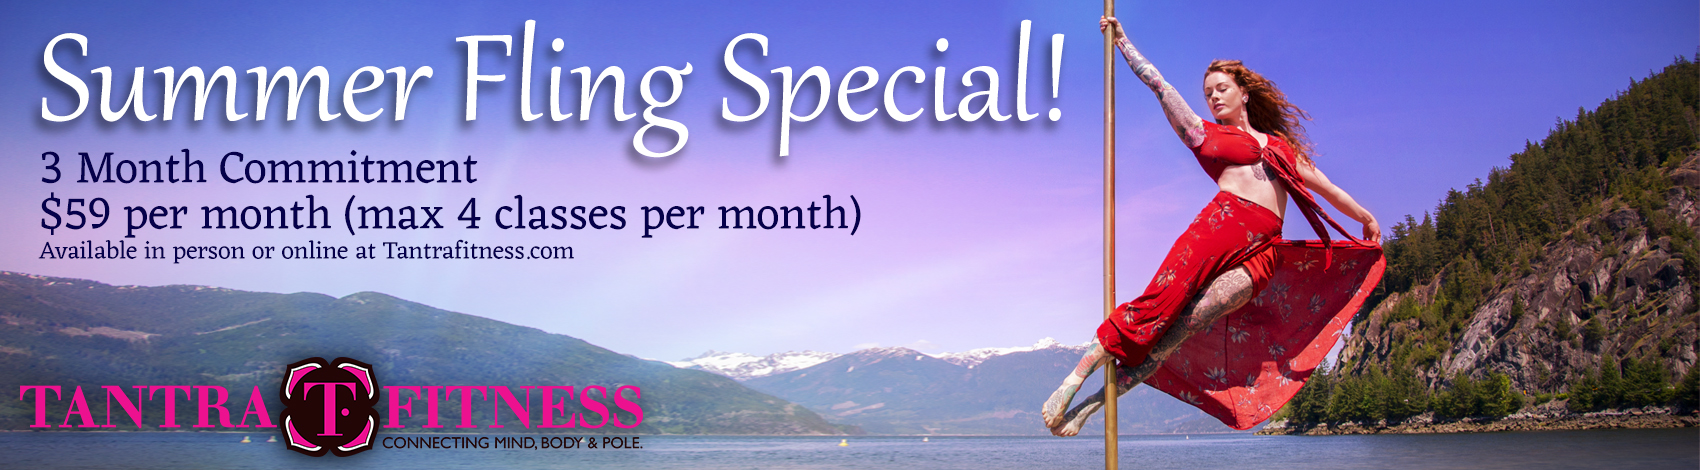 Tantra Fitness Summer Special - $59/month - 4 Classes